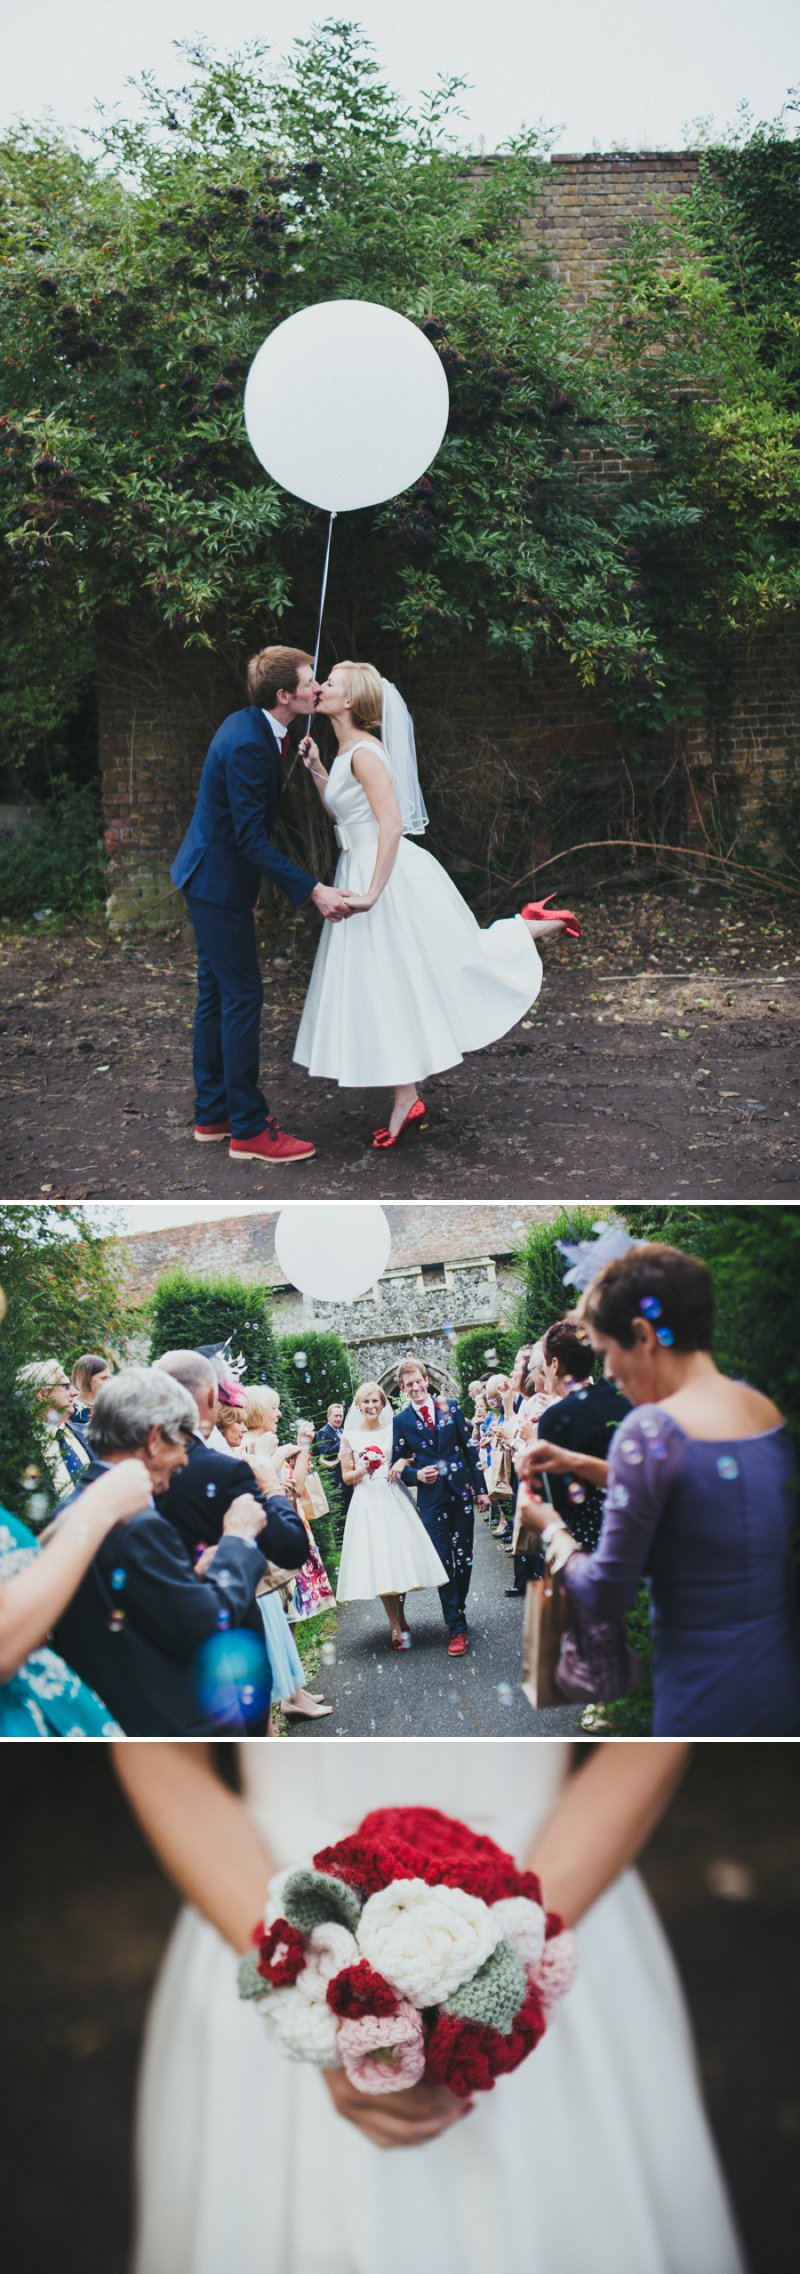 Vintage Inspired DIY Wedding At Kingston Village Hall With Bride In 50s Style Tea Length Gown And Groom In Topman Suit With Red Shoes And Knitted Bouquets, Ties And Corsages With Fete Games And A Coconut Shy 1